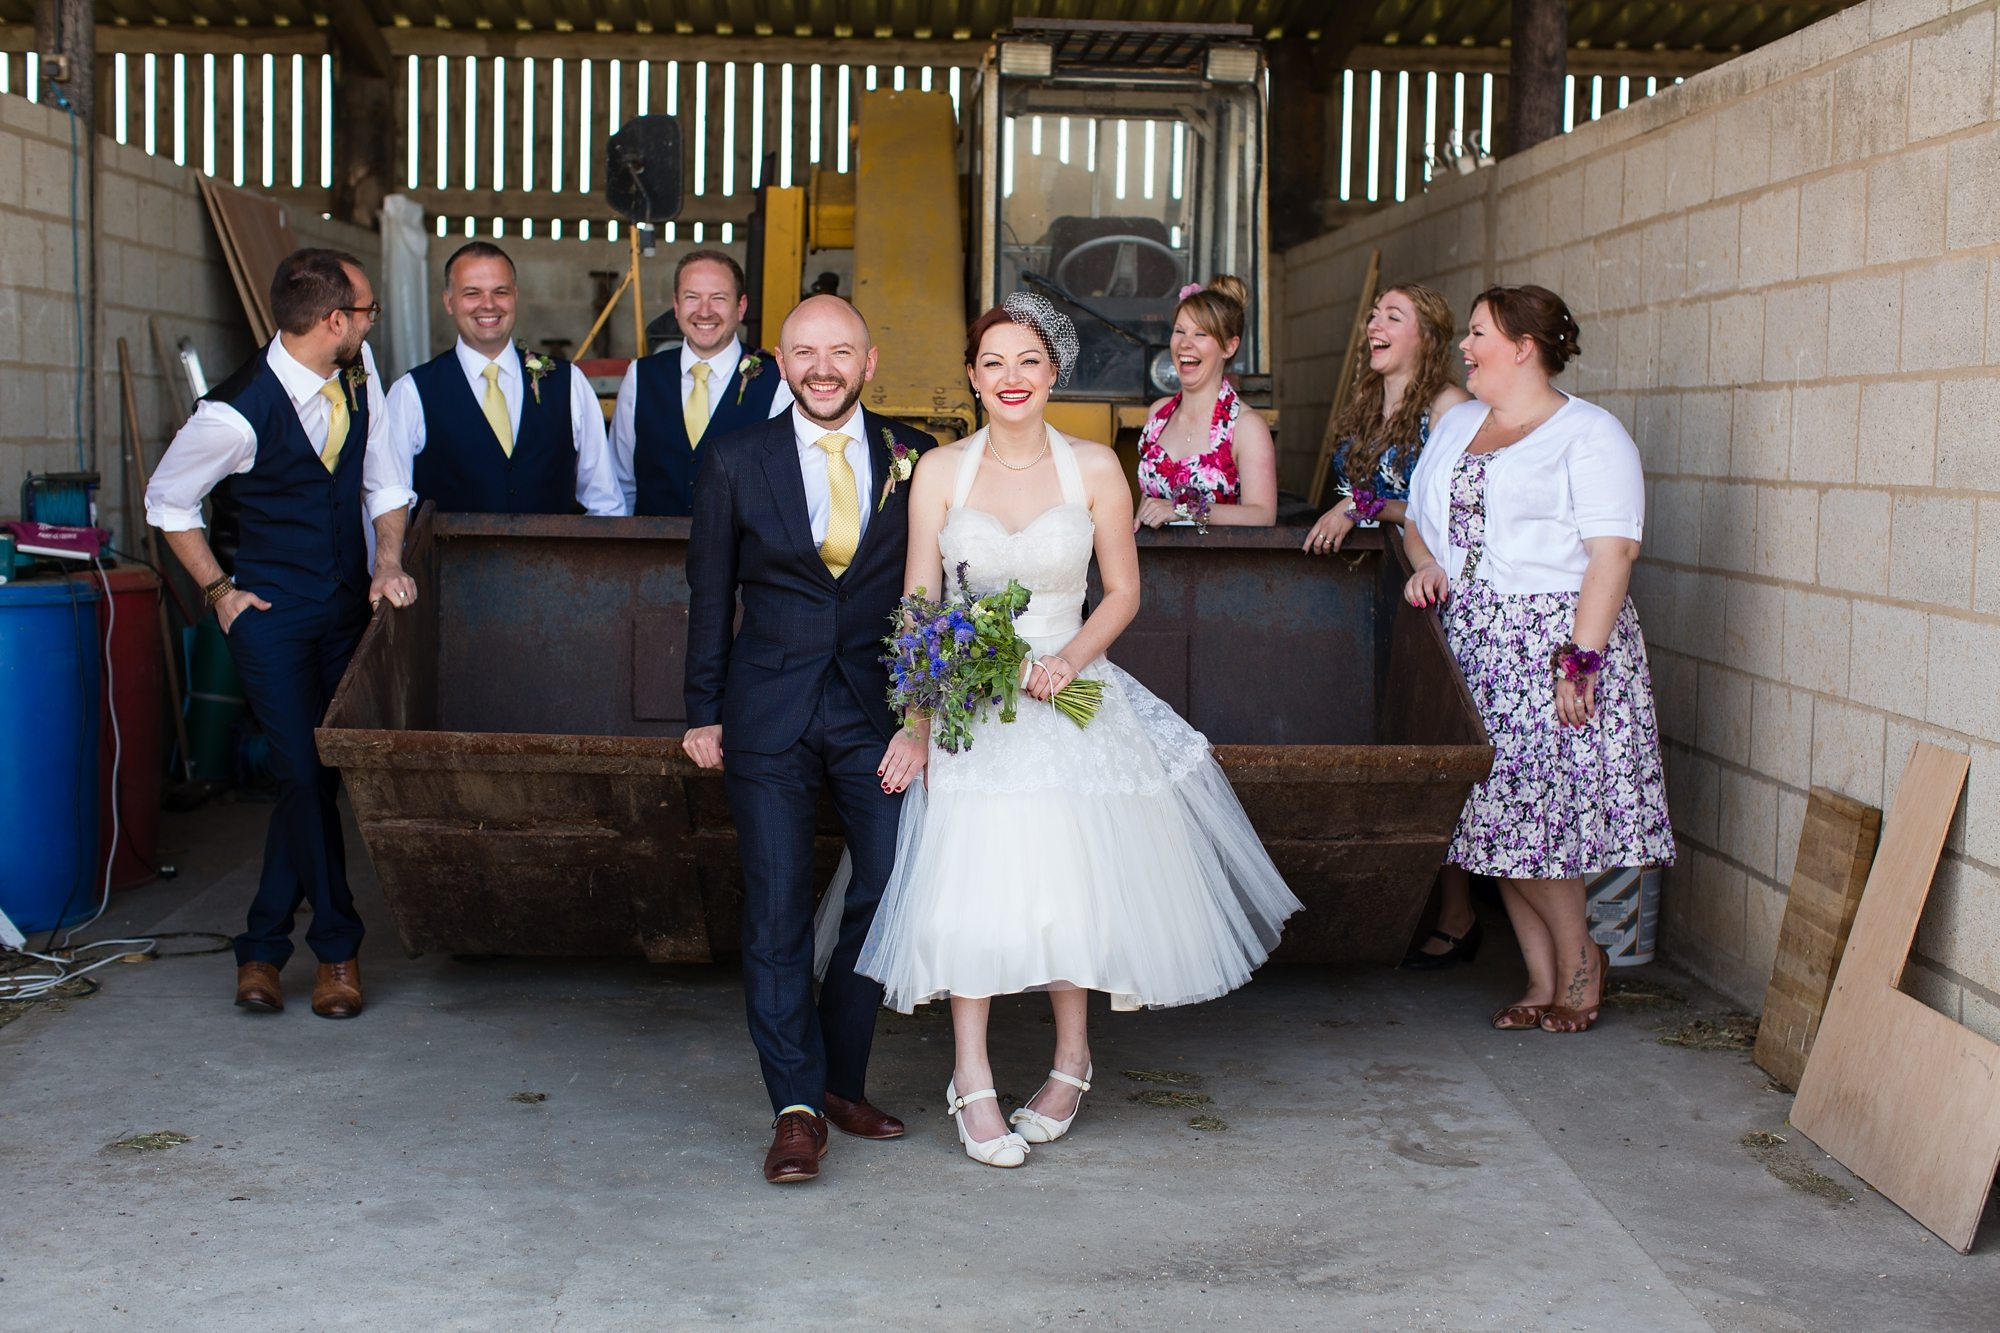 bride and groom holding hands and bouque under barn with wedding guests